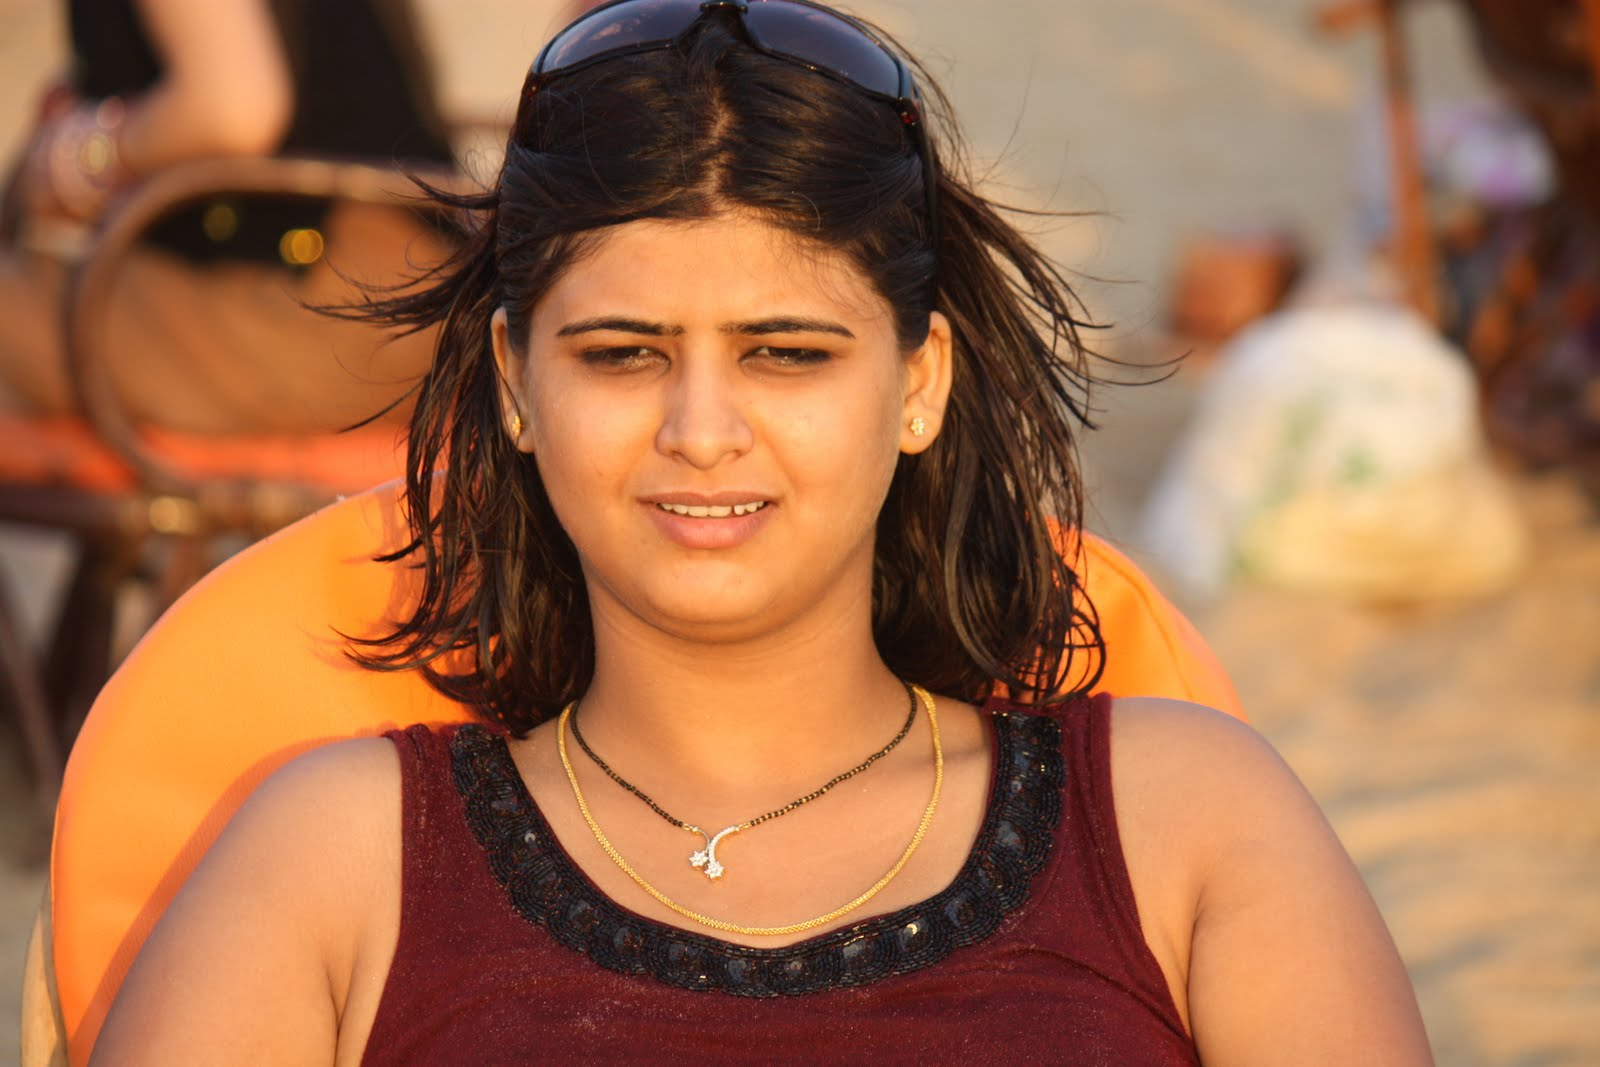 Hot Indian Girl Pictures At Goa Beach-7738